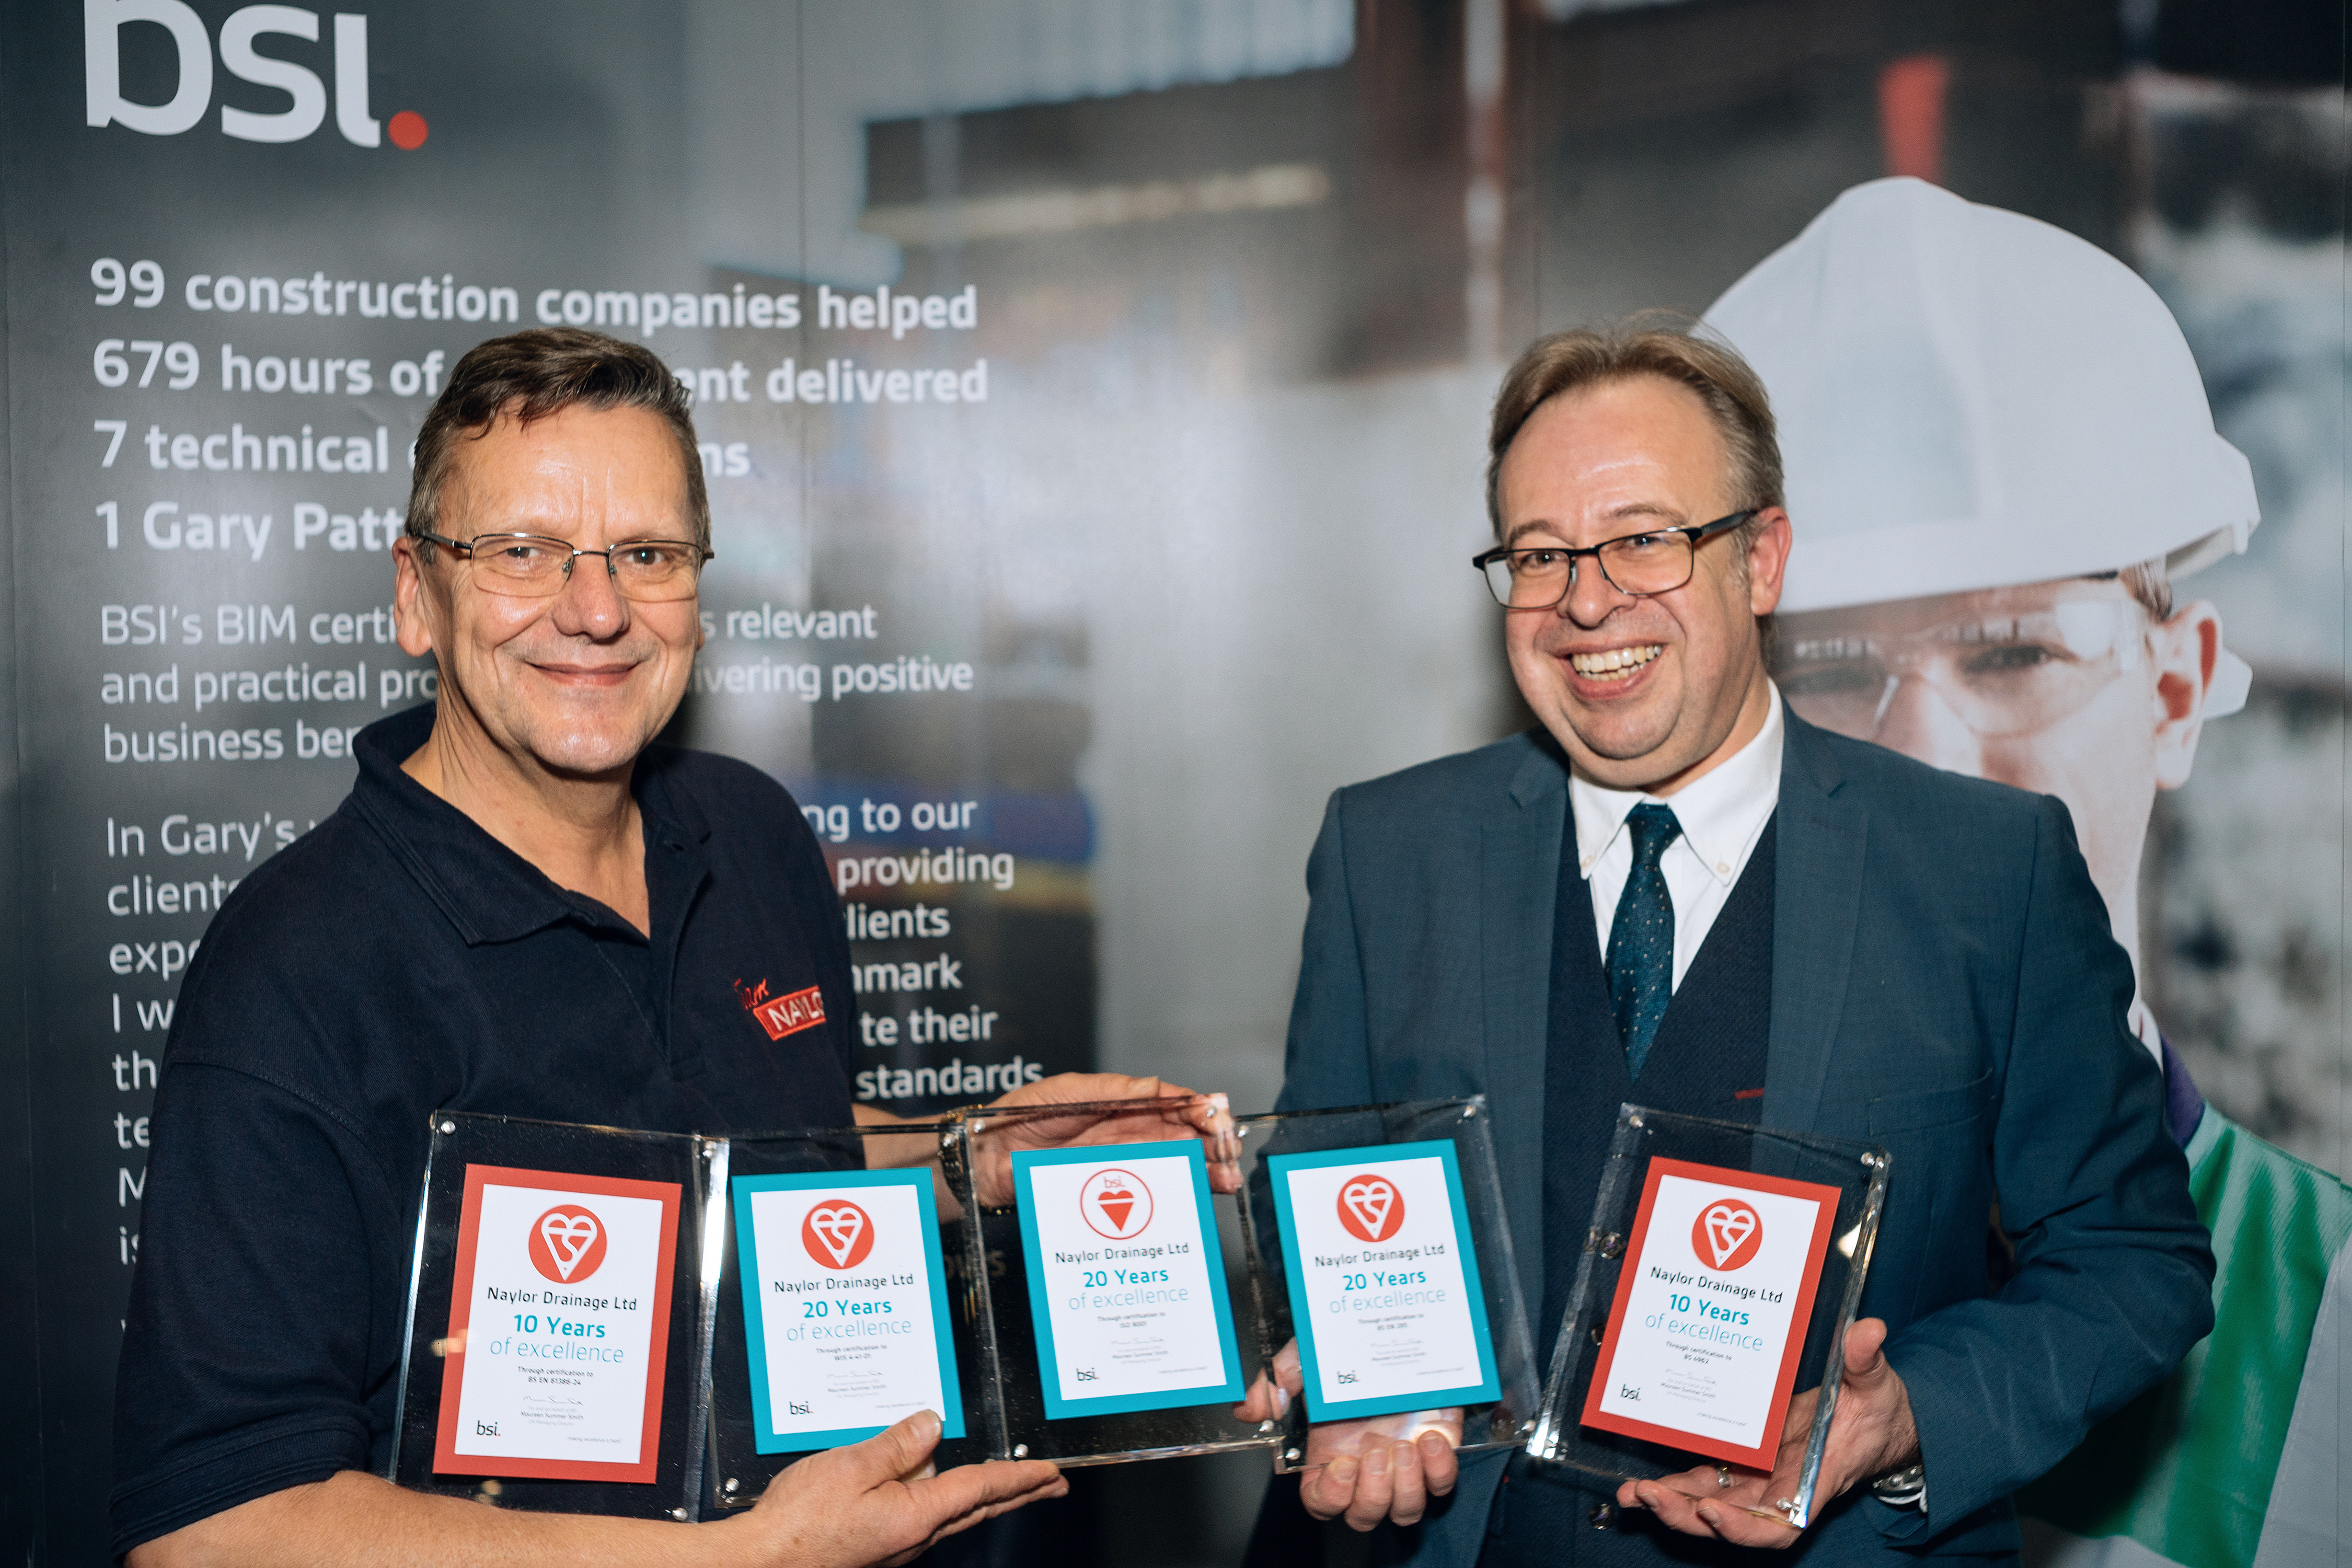 Naylor Drainage Ltd receive loyalty awards for four BSI Kitemarks and ISO 9001, Quality Management totalling 80 years